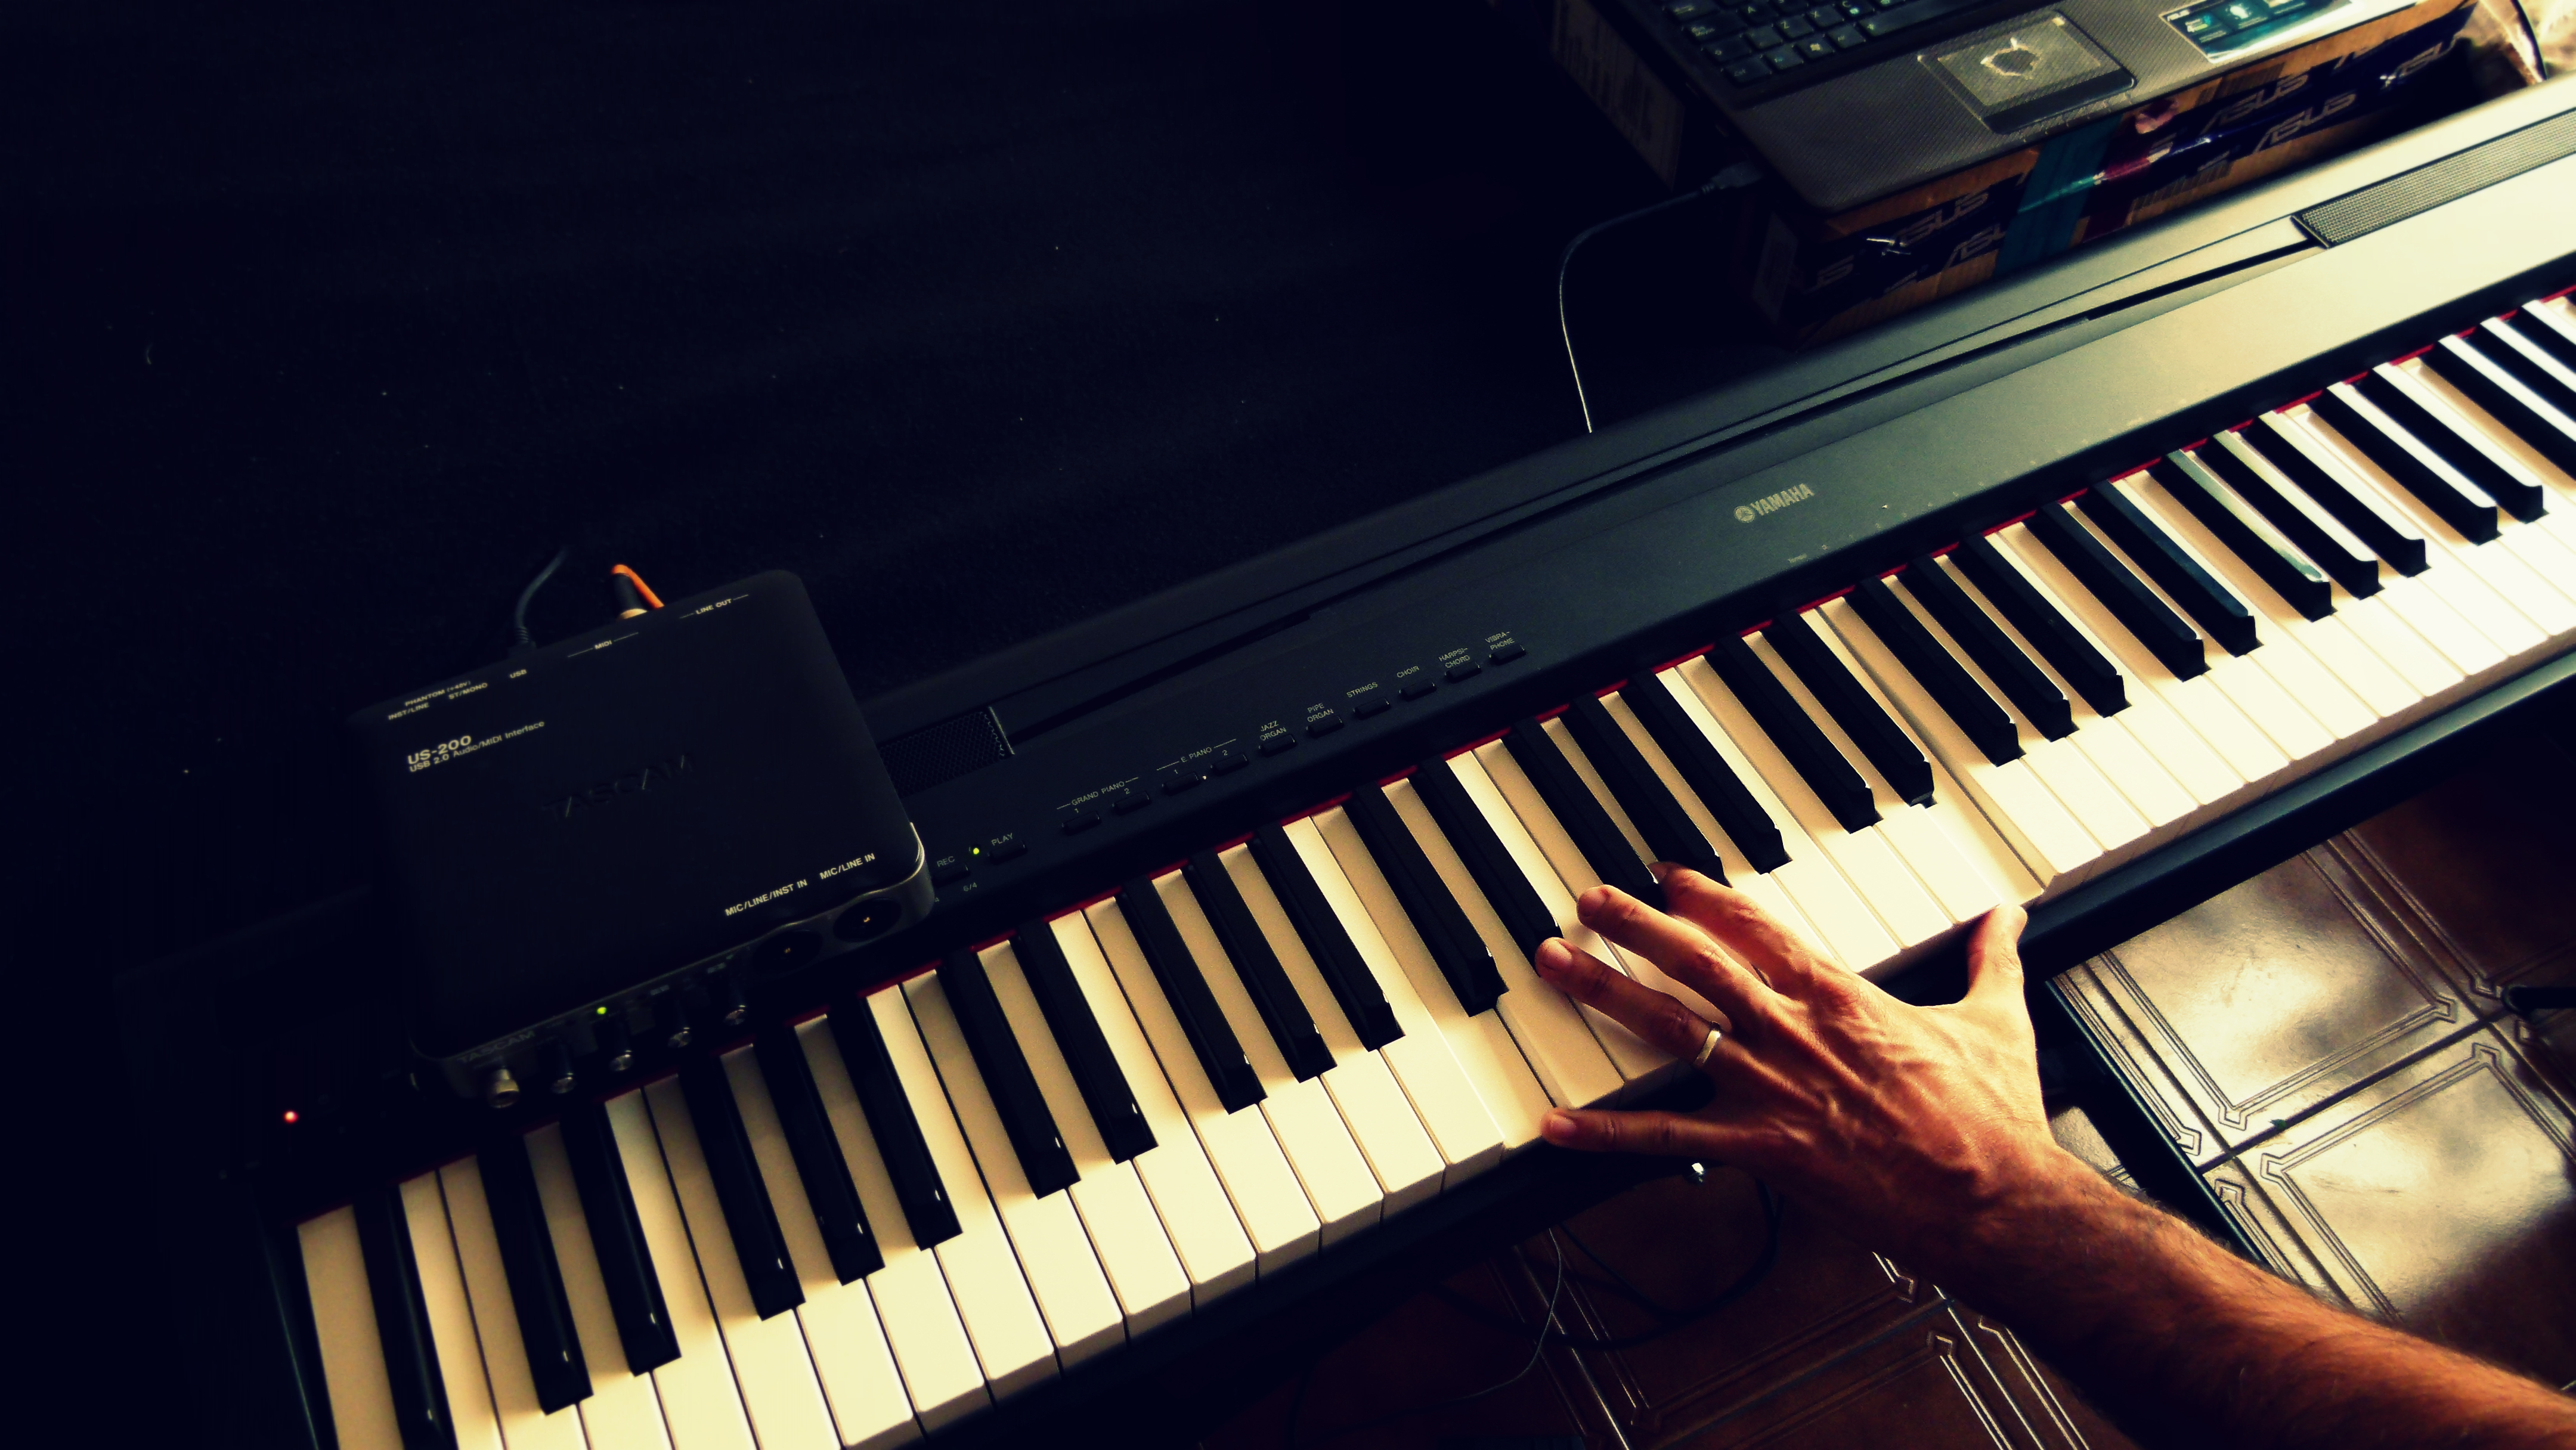 Jazz Piano Wallpaper Posted By Samantha Simpson